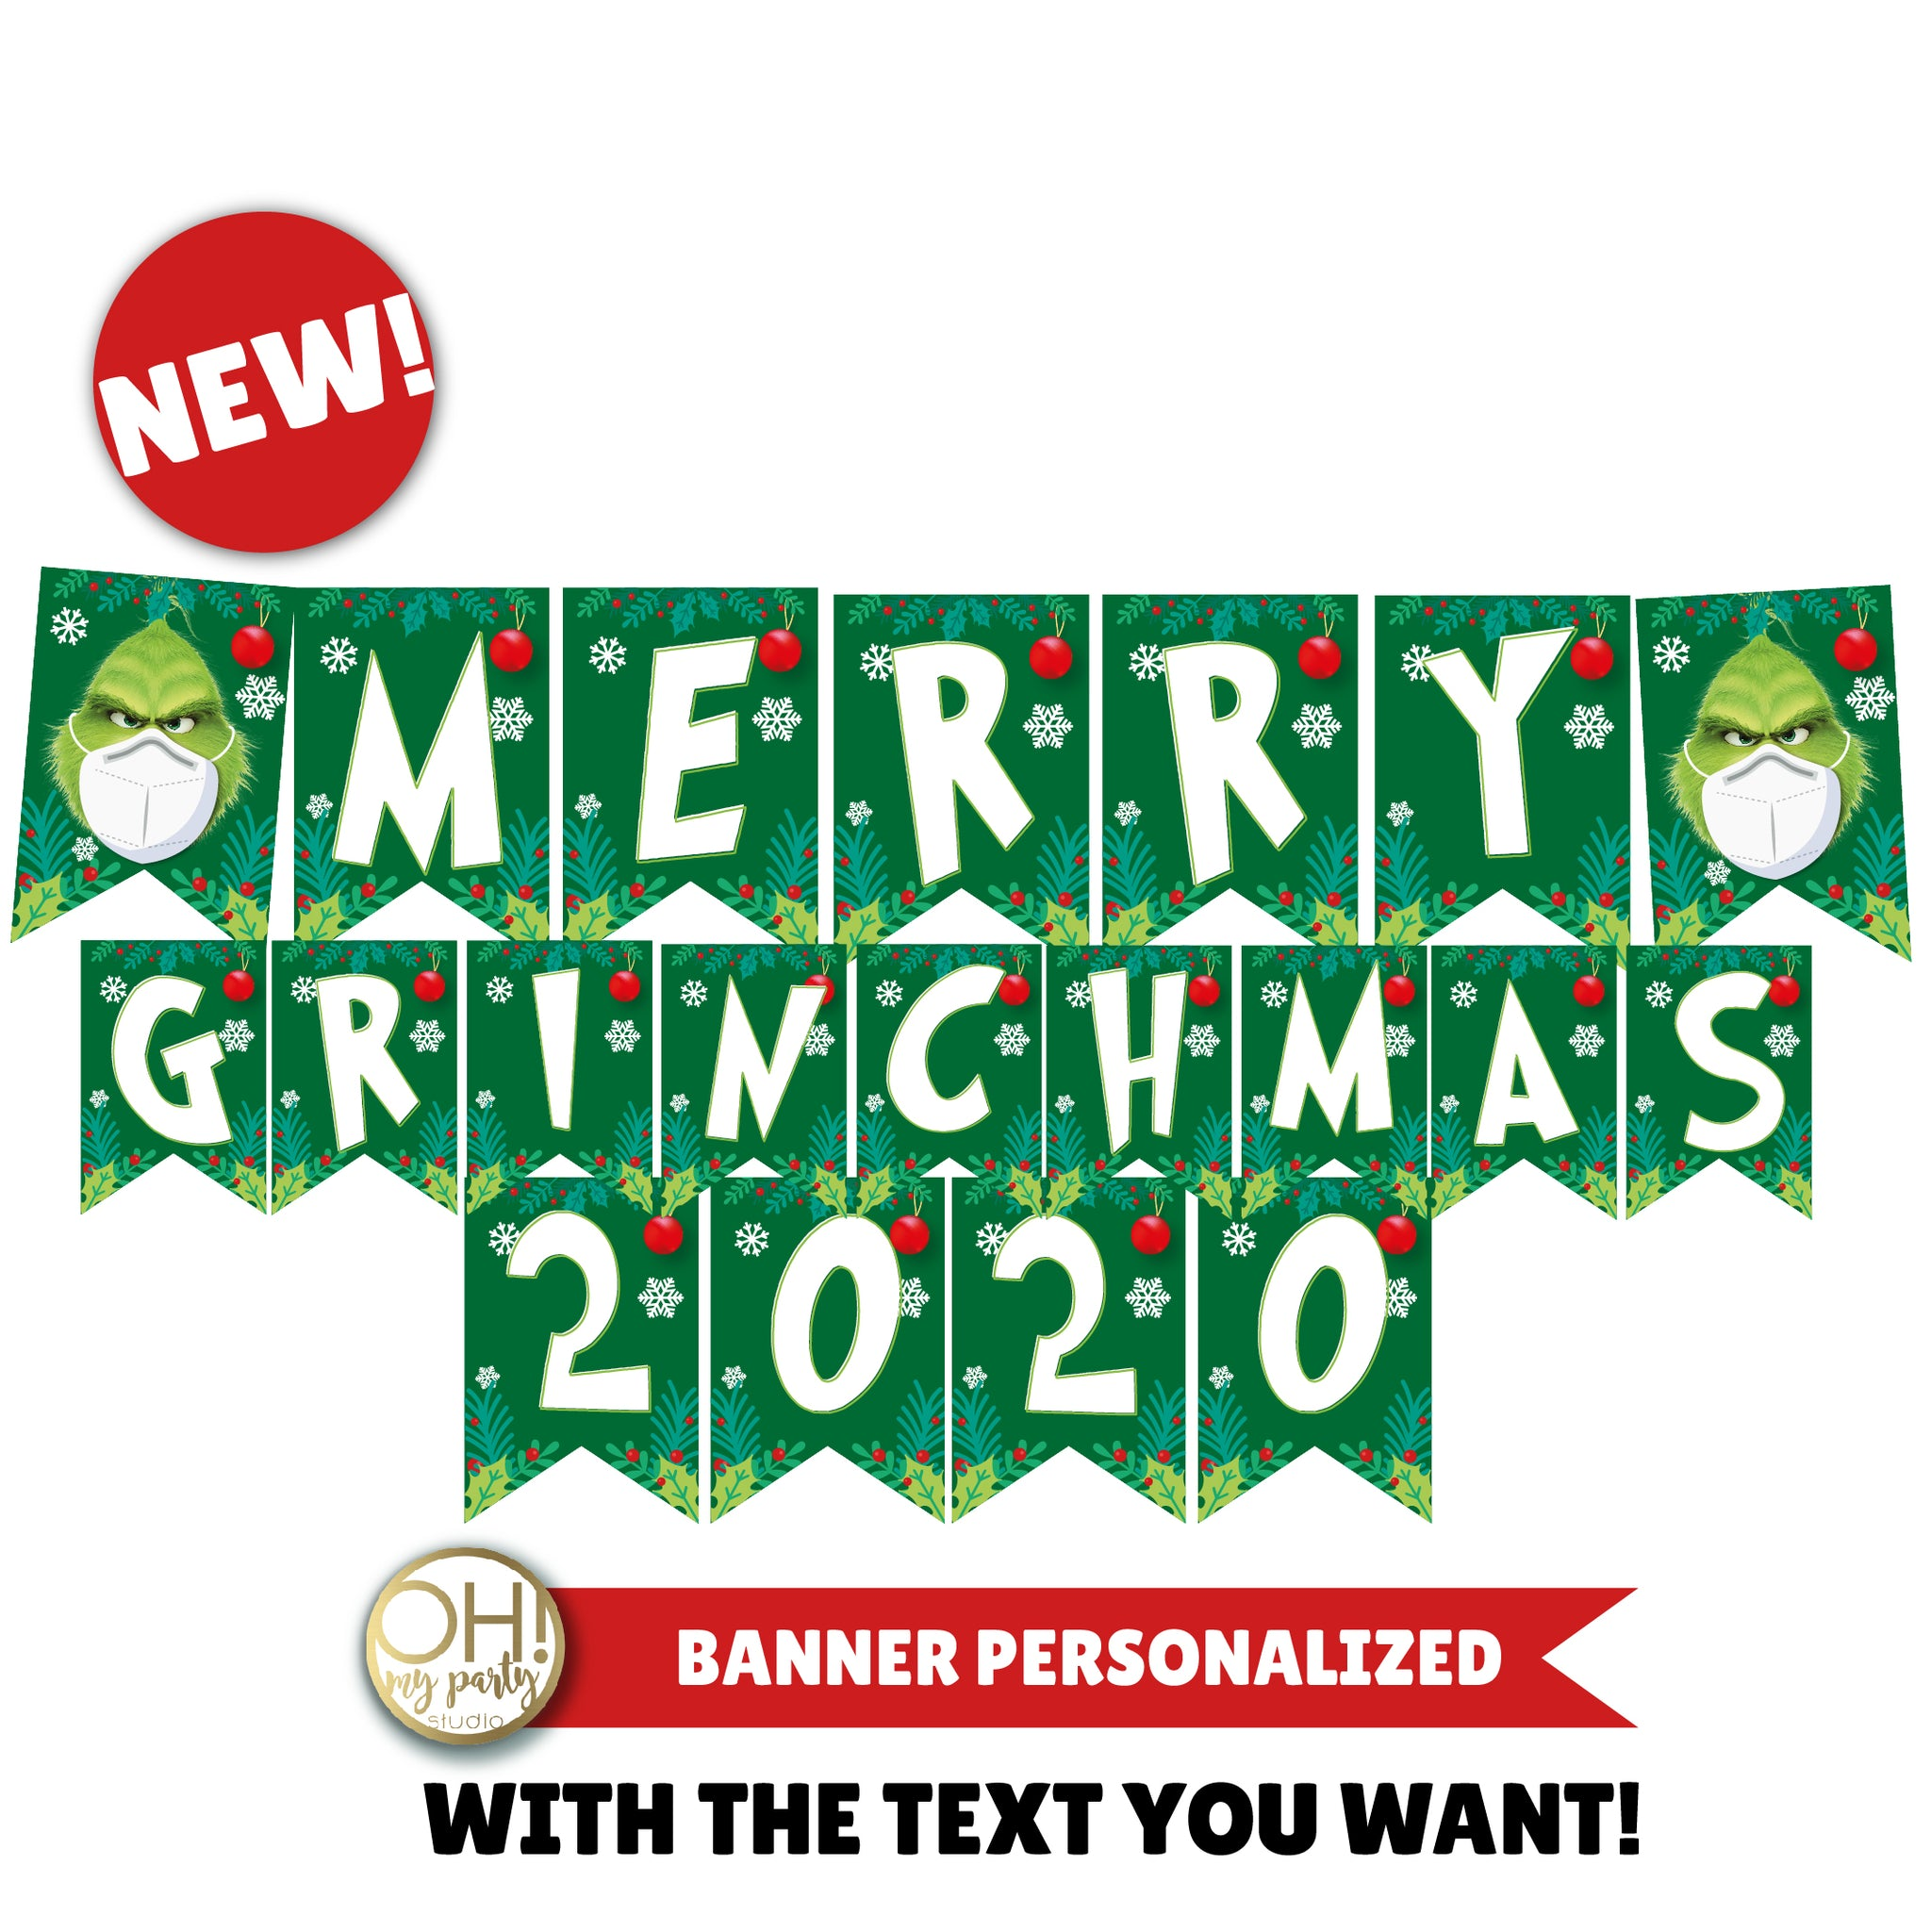 BANNER GRINCH, BANNER CHIRSTMAS 2020, BANNER CHRISTMAS PERSONALIZED, GRINCHMAS PARTY DECORATIONS, BANNER GRINCHMAS, GRINCHMAS DECORATIONS, GRINCHMAS PARTY SUPPLIES, GRINCHMAS 2020, GRINCH PARTY DECORATIONS, GRINCH BIRTHDAY PARTY, GRINCH BIRTHDAY, GRINCH PARTY, GRINCH 2020, GRINCH CORONAVIRUS, GRINCH COVID 19, GRINCH COVID, CHRISTMAS COVID